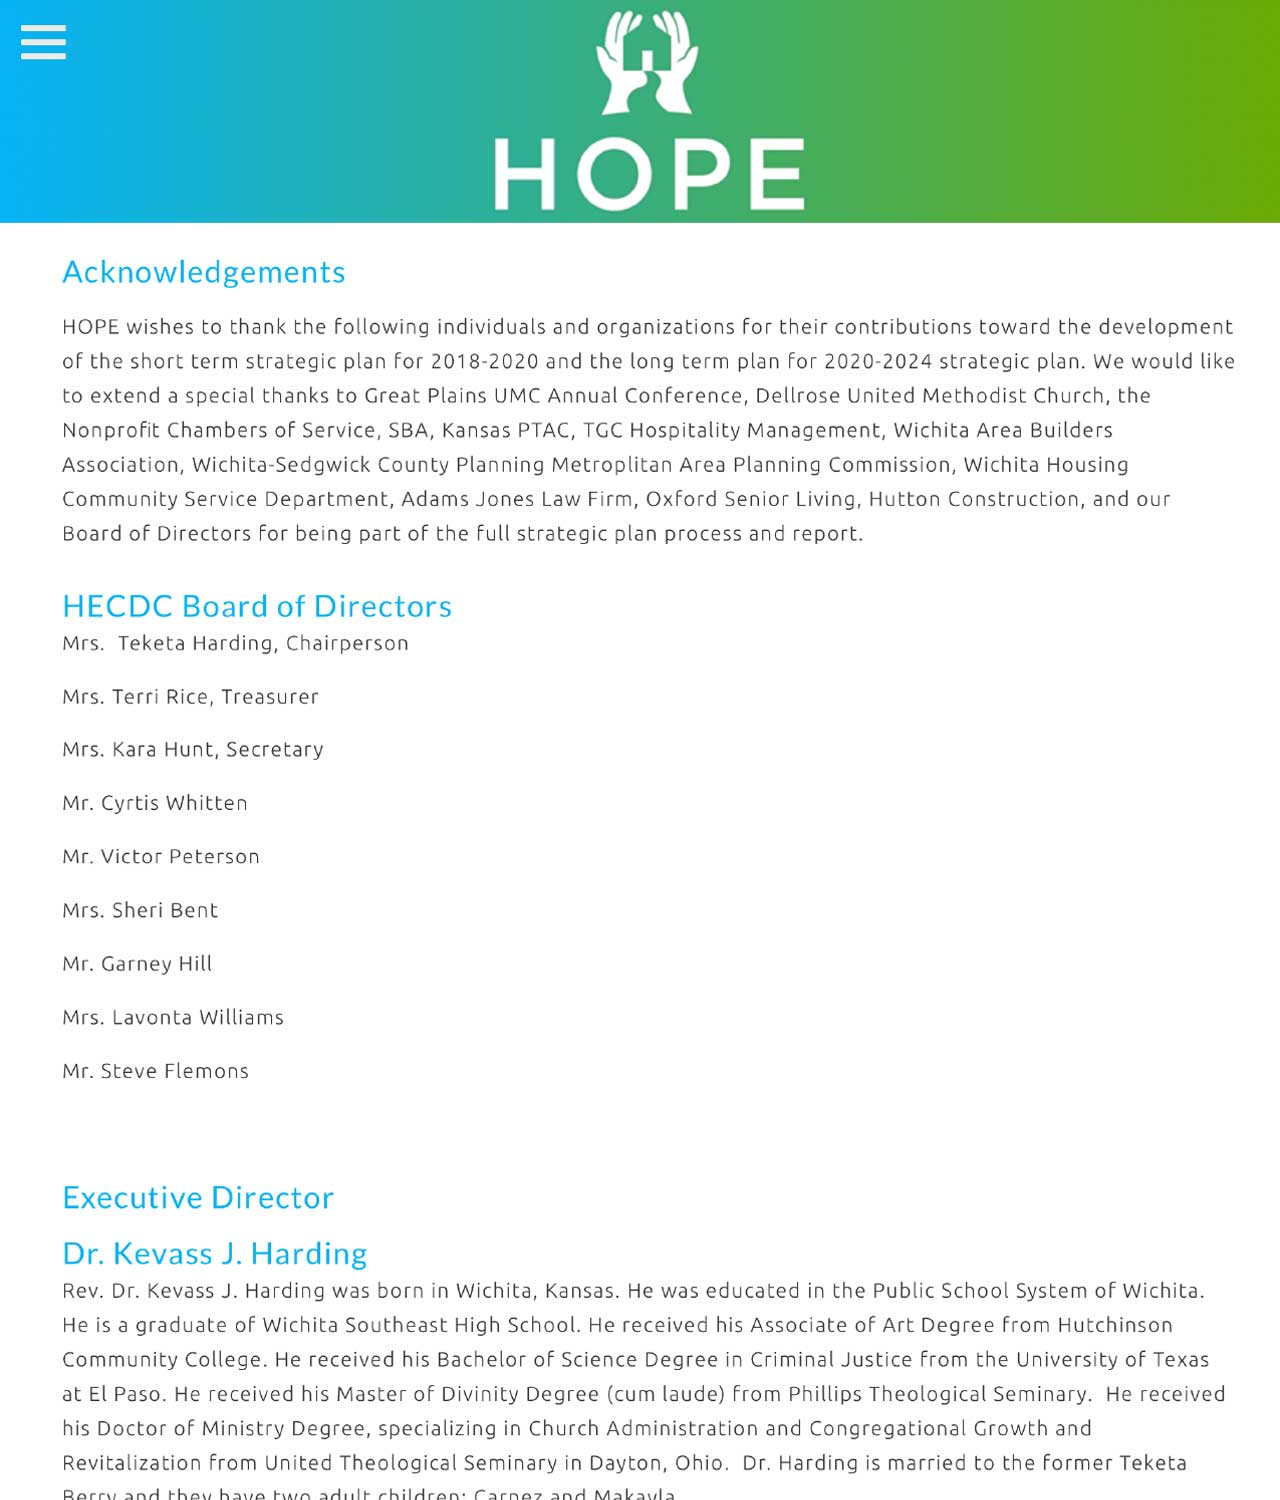 website HOPE IMG05